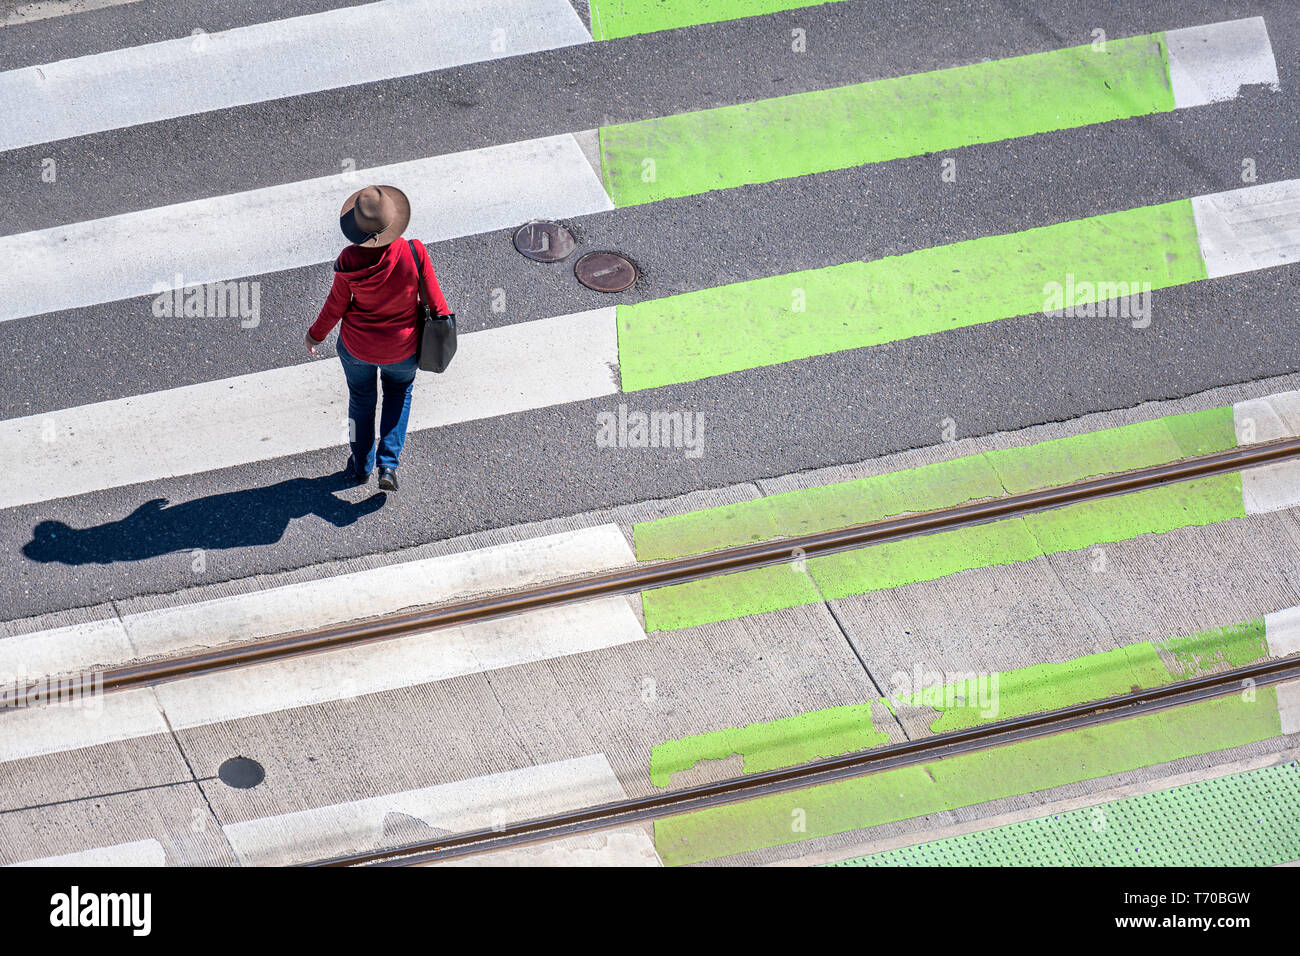 Elegant slender woman in a hat, red cardigan and jeans crosses the road on a zebra pedestrian crossing observing the rules of the road to protect your - Stock Image